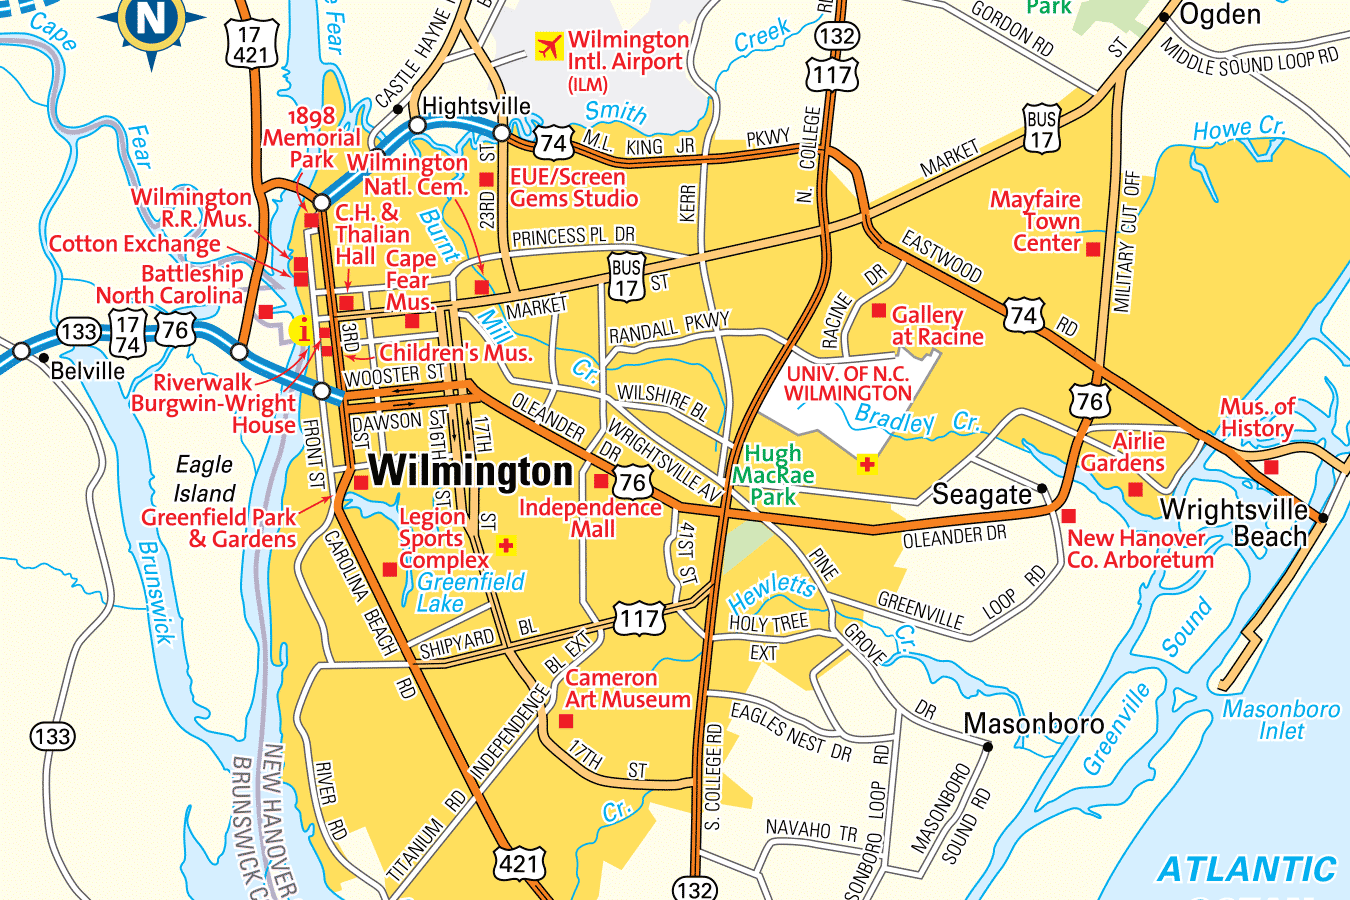 Wilmington, NC is a bound by the Cape Fear to the west and the Intracoastal Waterway to the East.